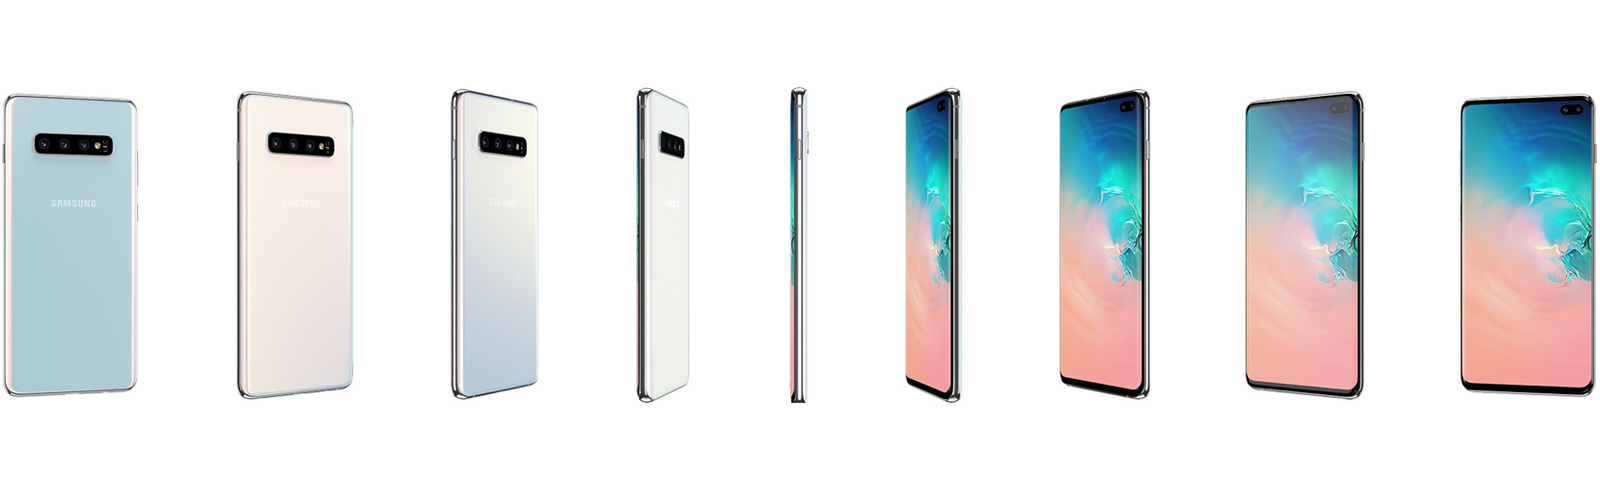 Samsung will launch four Galaxy Note 10 models in the second half of 2019